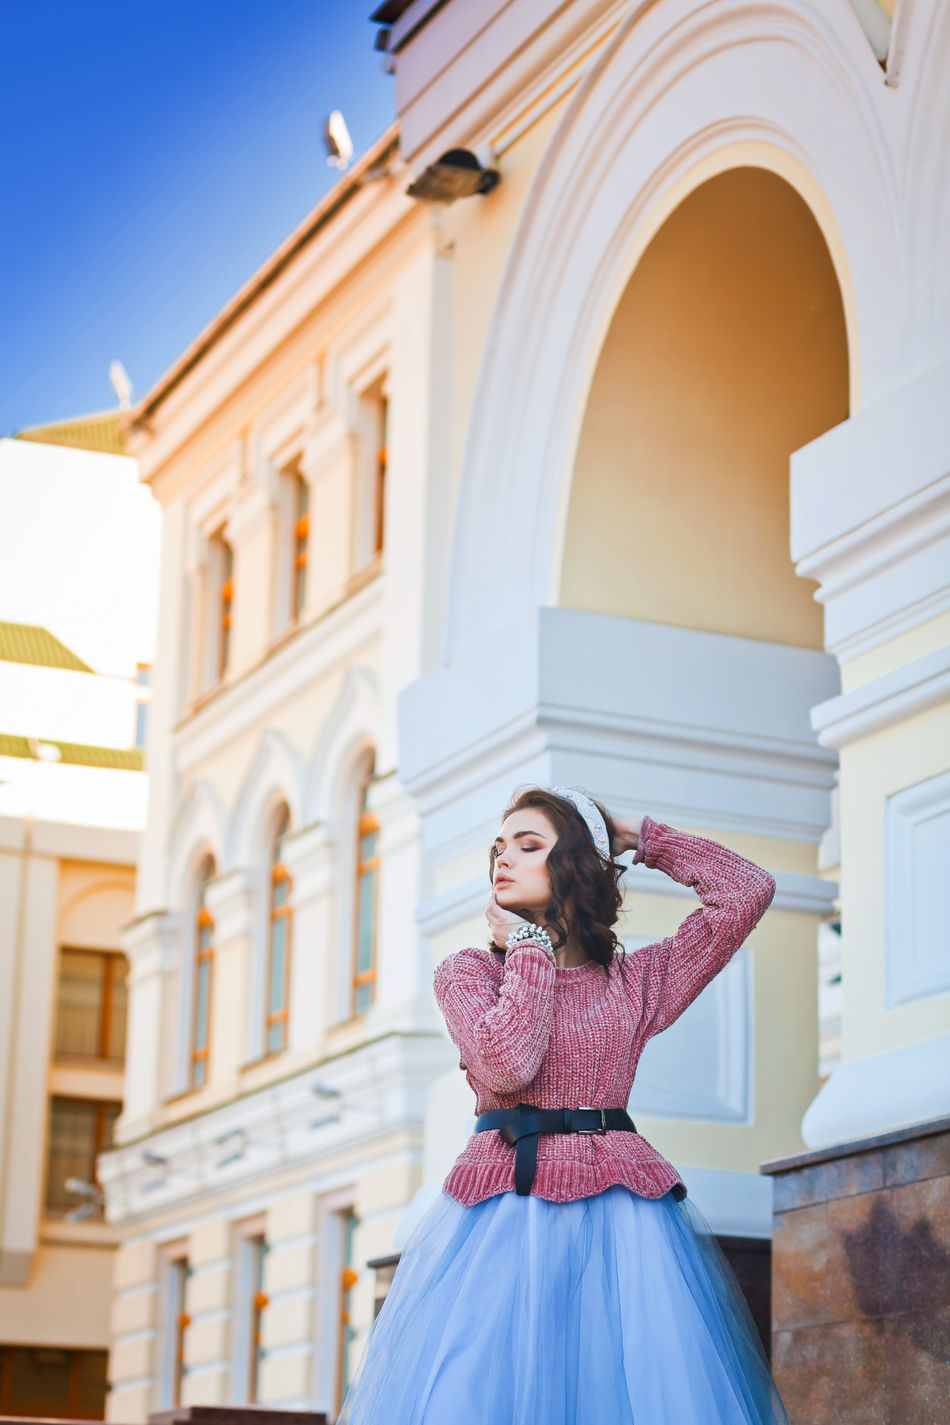 Arch Architecture Beauty Blue Building Exterior Built Structure City Editorial Photography Enjoying Life Enjoying The Sun Millennial Pink Outdoor Photography Sky Sunny Sunny Day Travel Destinations Vacations Warm